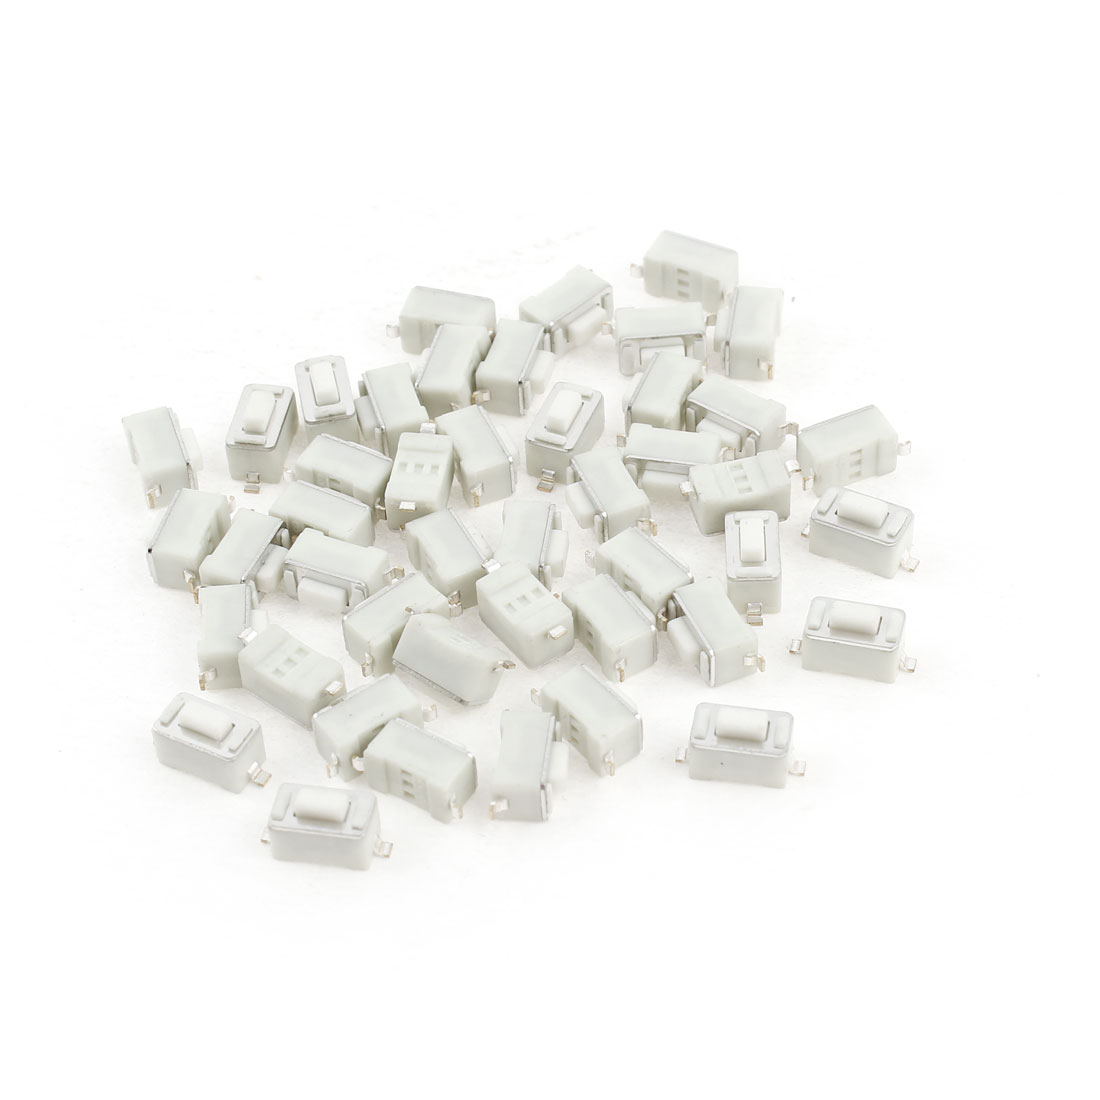 50Pcs SMD Surface Mount Push Button Switch Momentary Tact 6x3x4.3mm